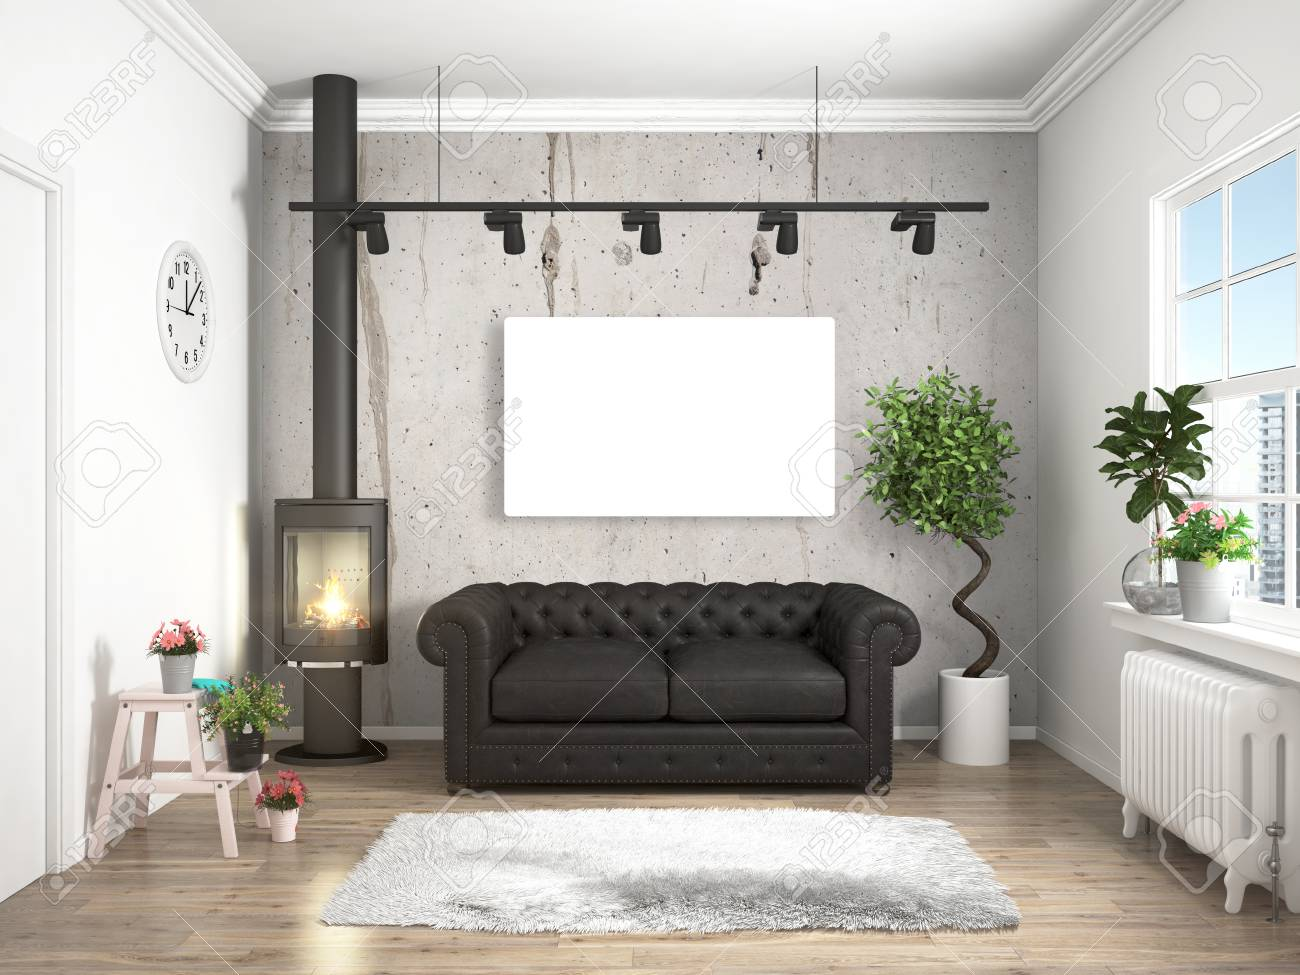 bright interior with sofa in a modern style 3d rendering stock